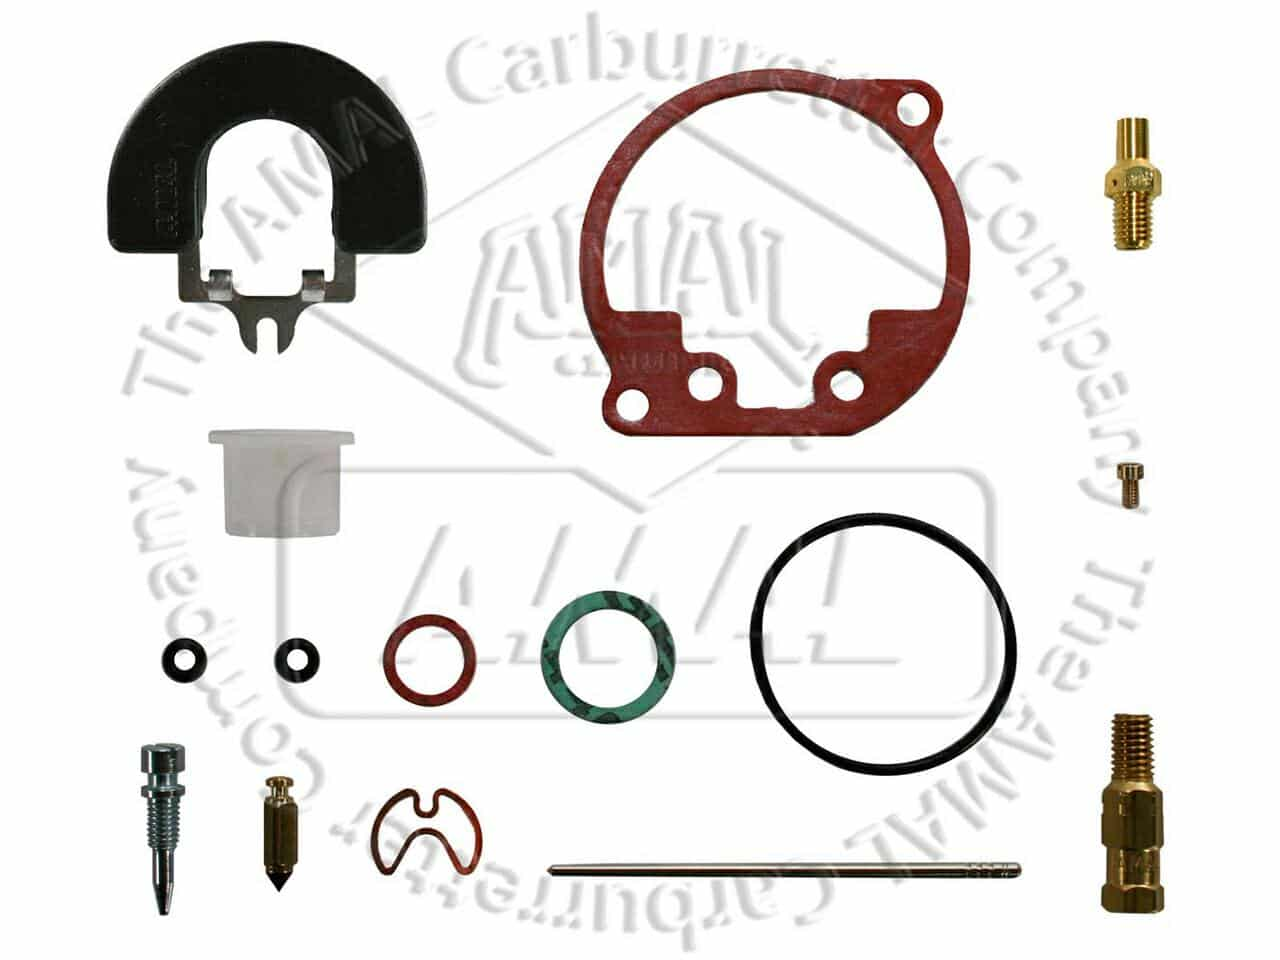 RKC/561 Amal major concentric carburettor repair kit with Stay Up float